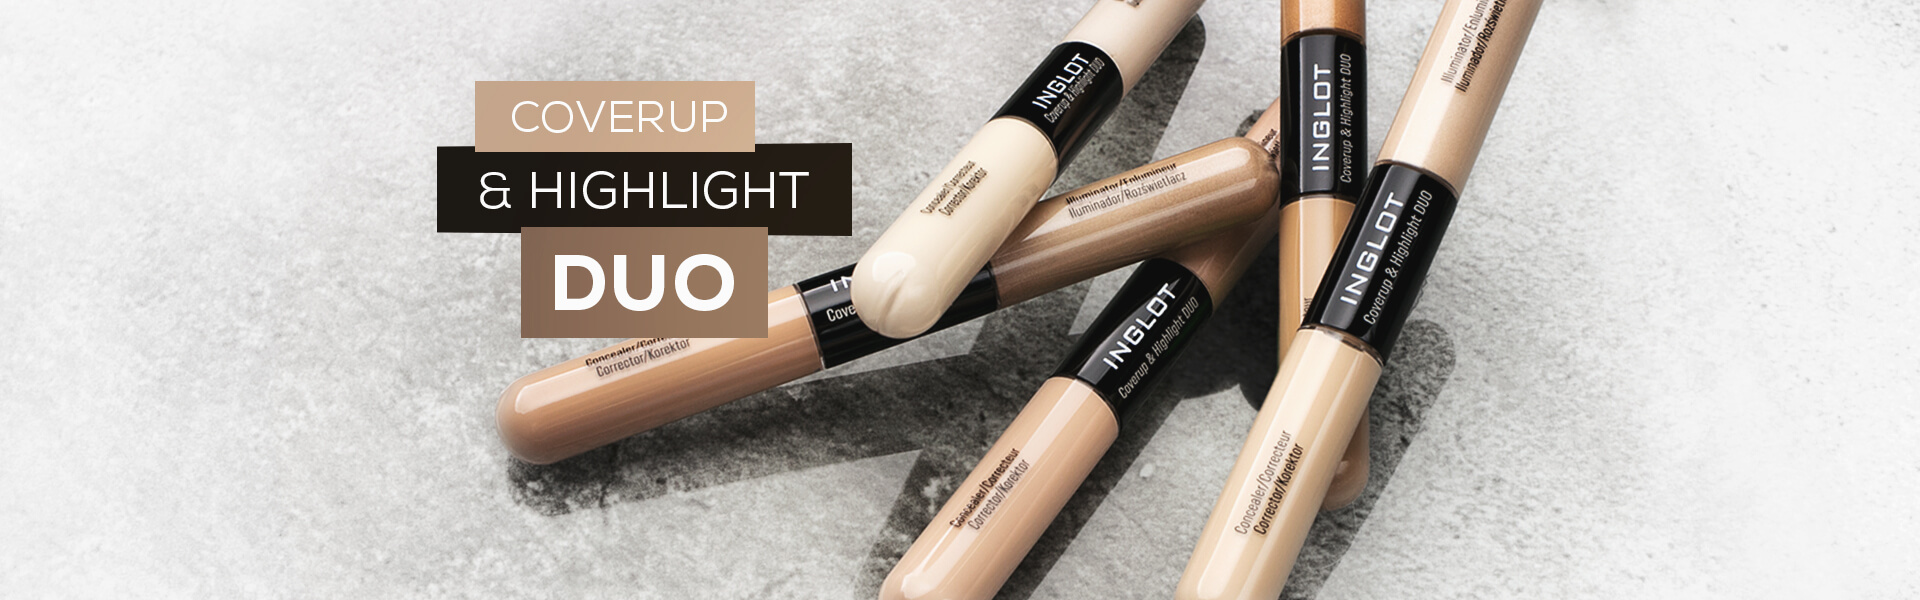 coverup-highlight-duo---slider-multi